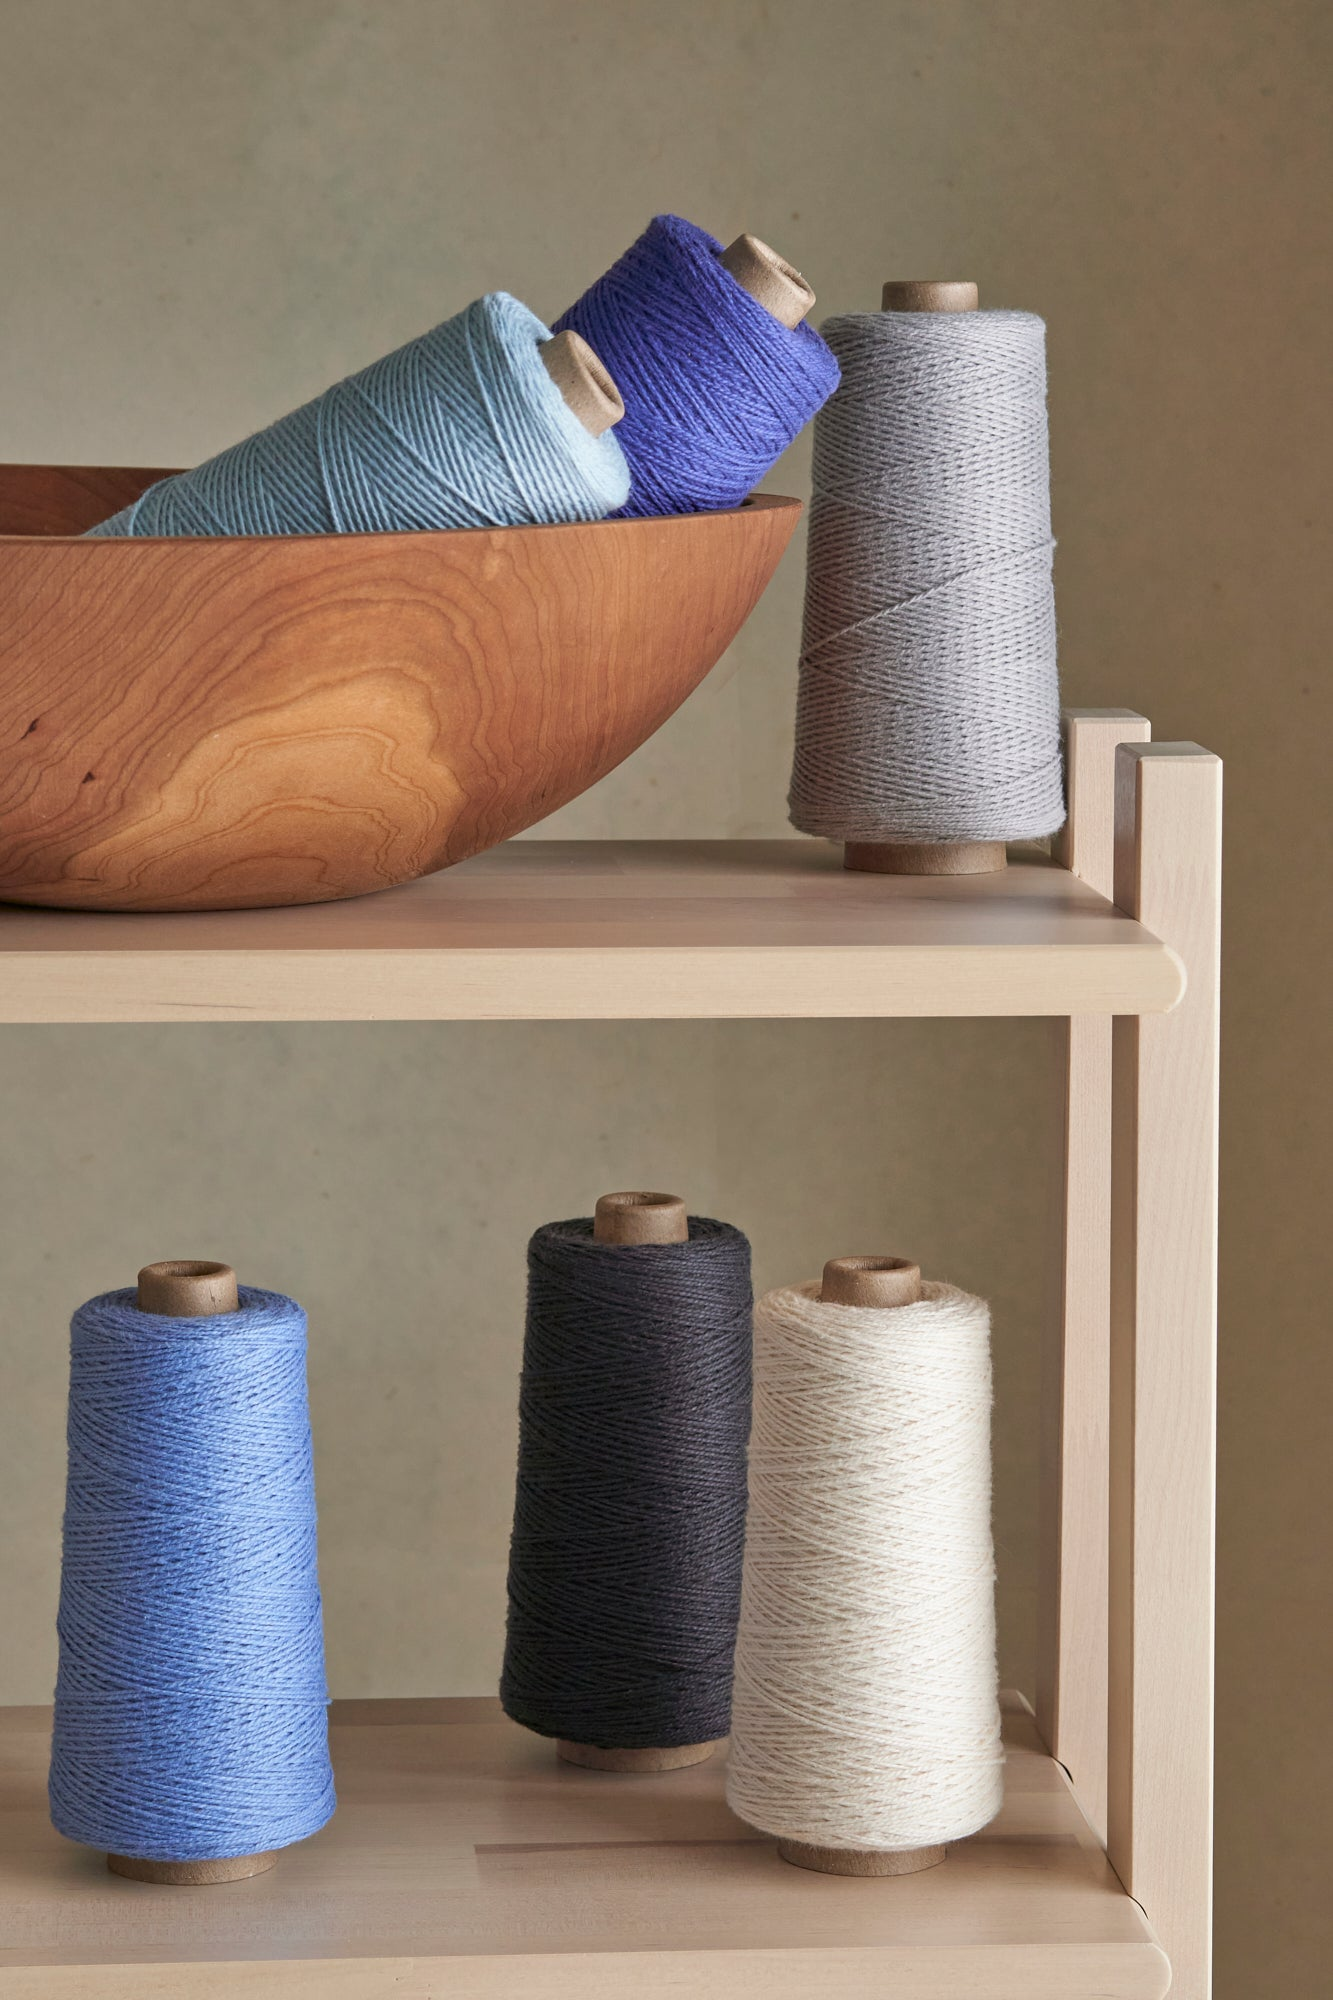 A set of cool toned yarns displayed on a wooden shelf.